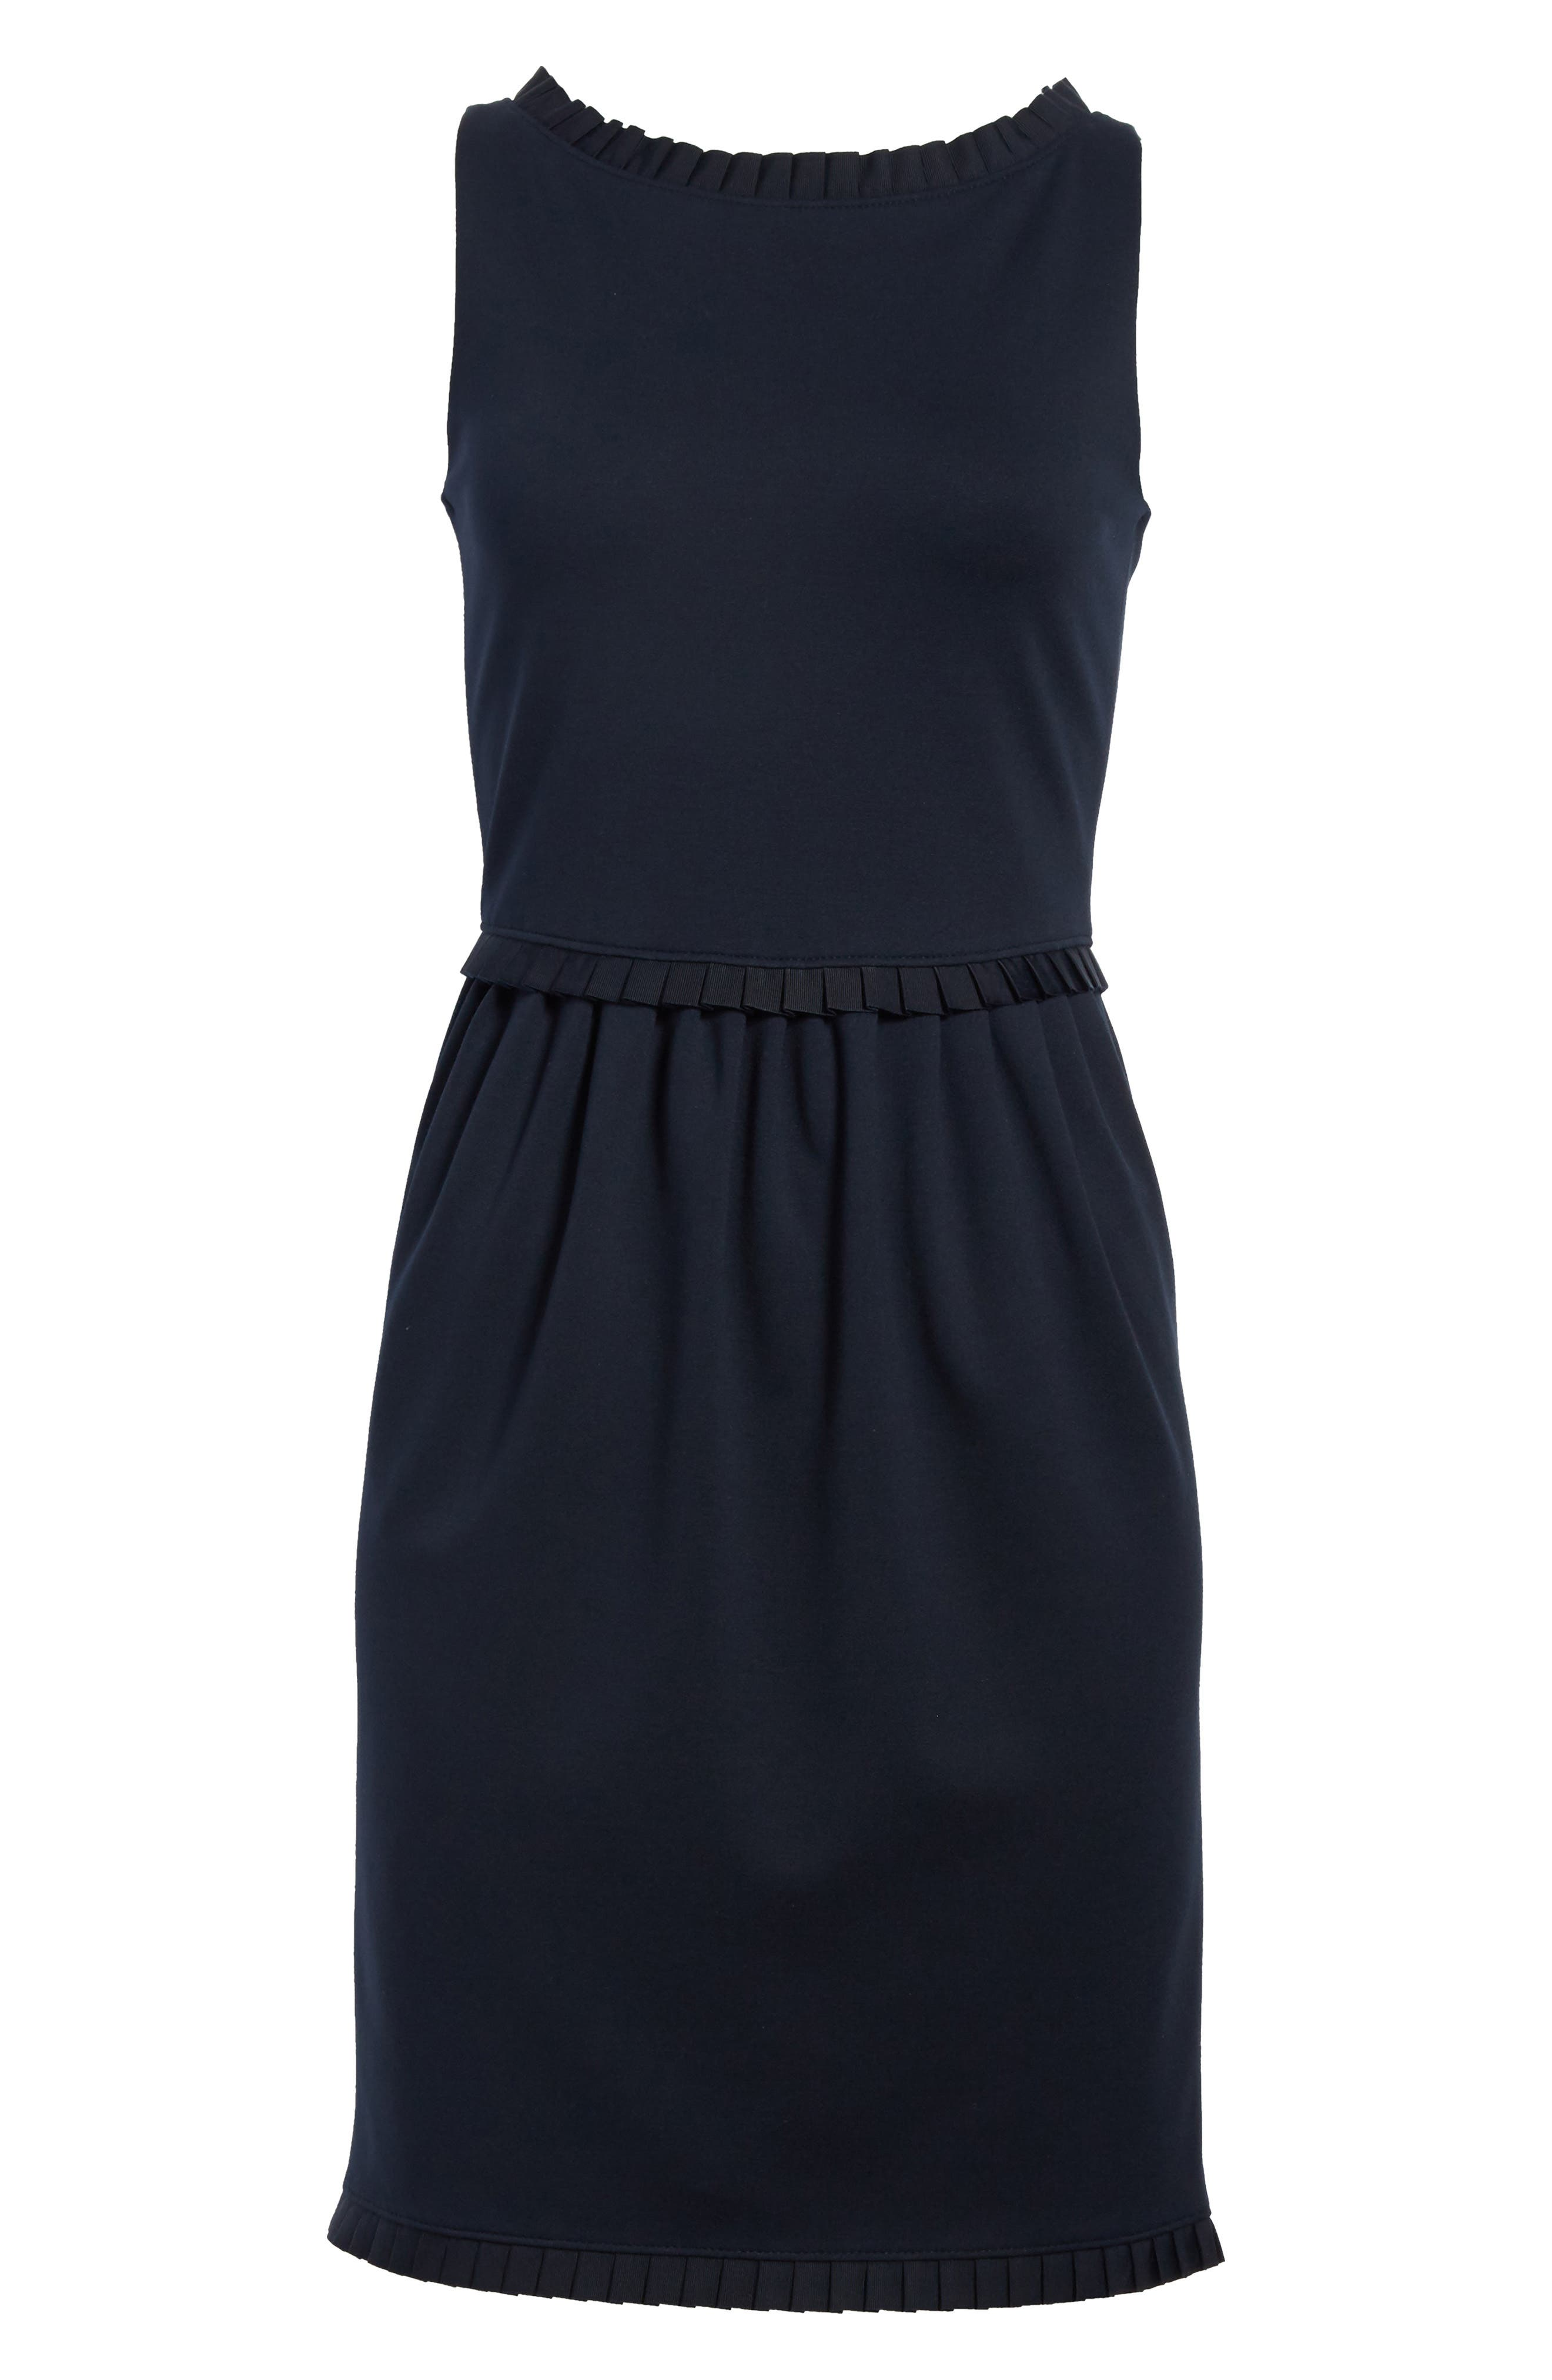 Milano Jersey Dress,                             Alternate thumbnail 7, color,                             Solid Blue Navy